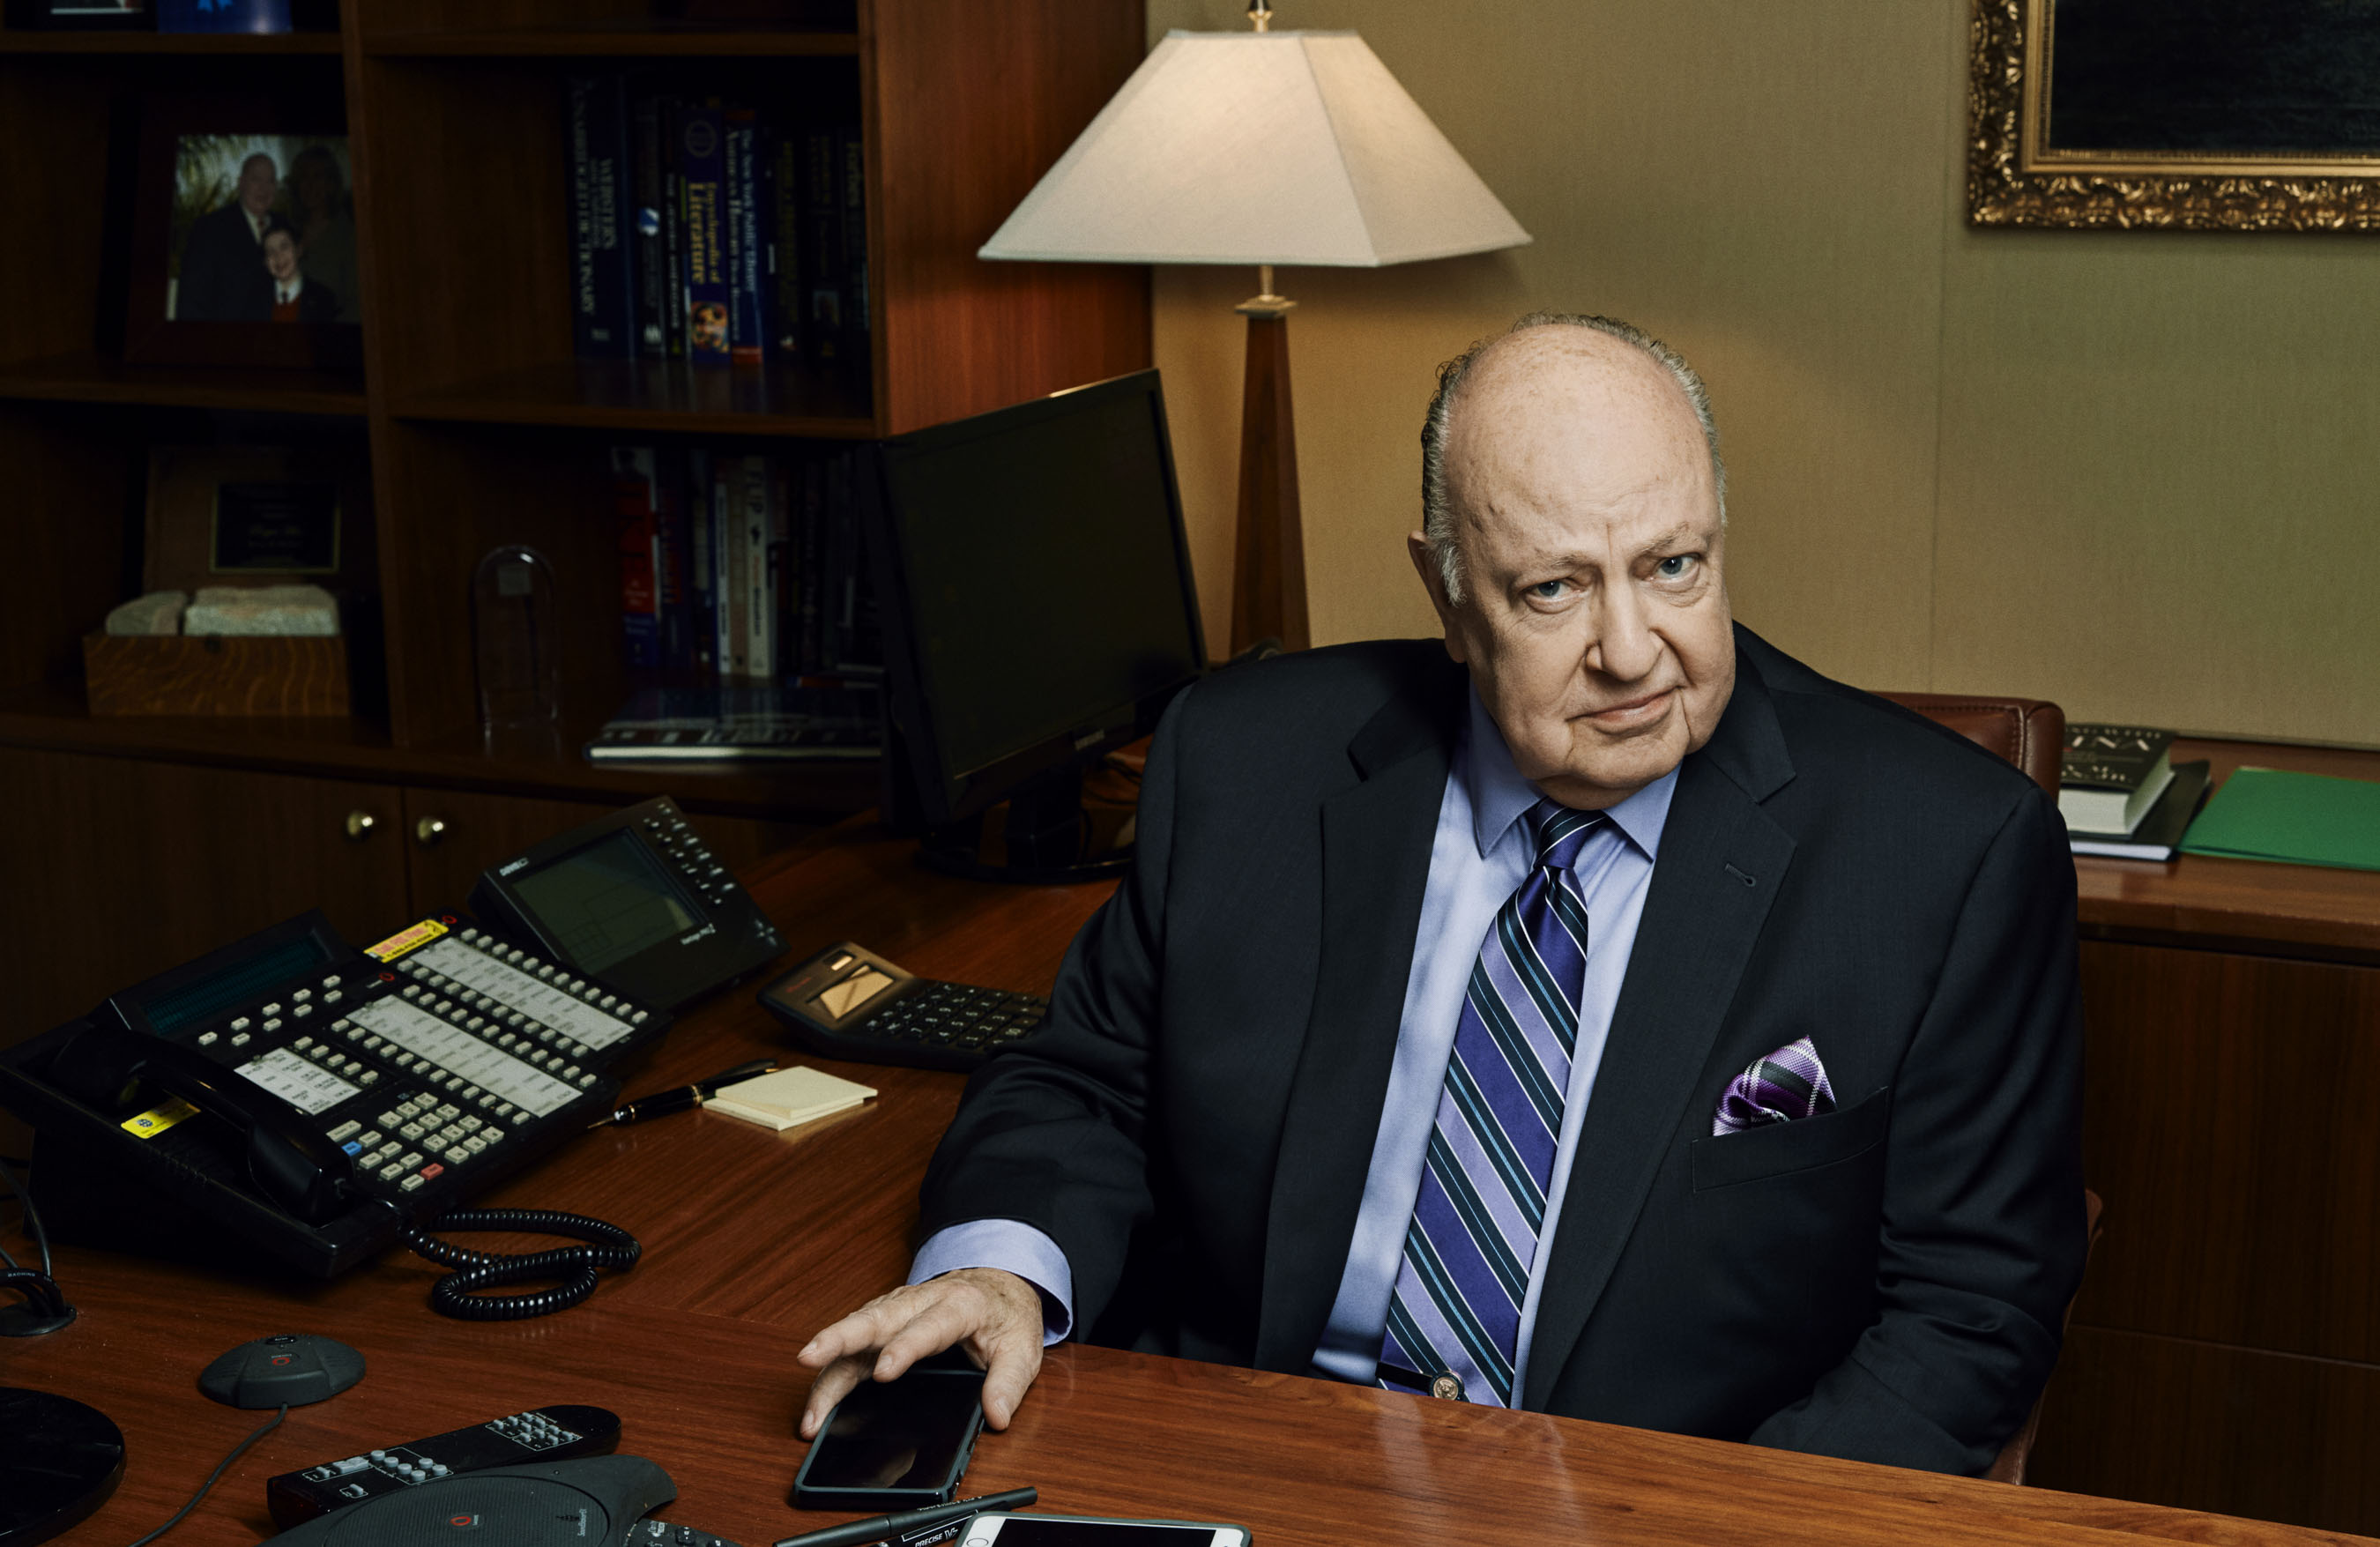 New Documentary Chronicles the Rise and Fall of Disgraced Fox News CEO Roger Ailes